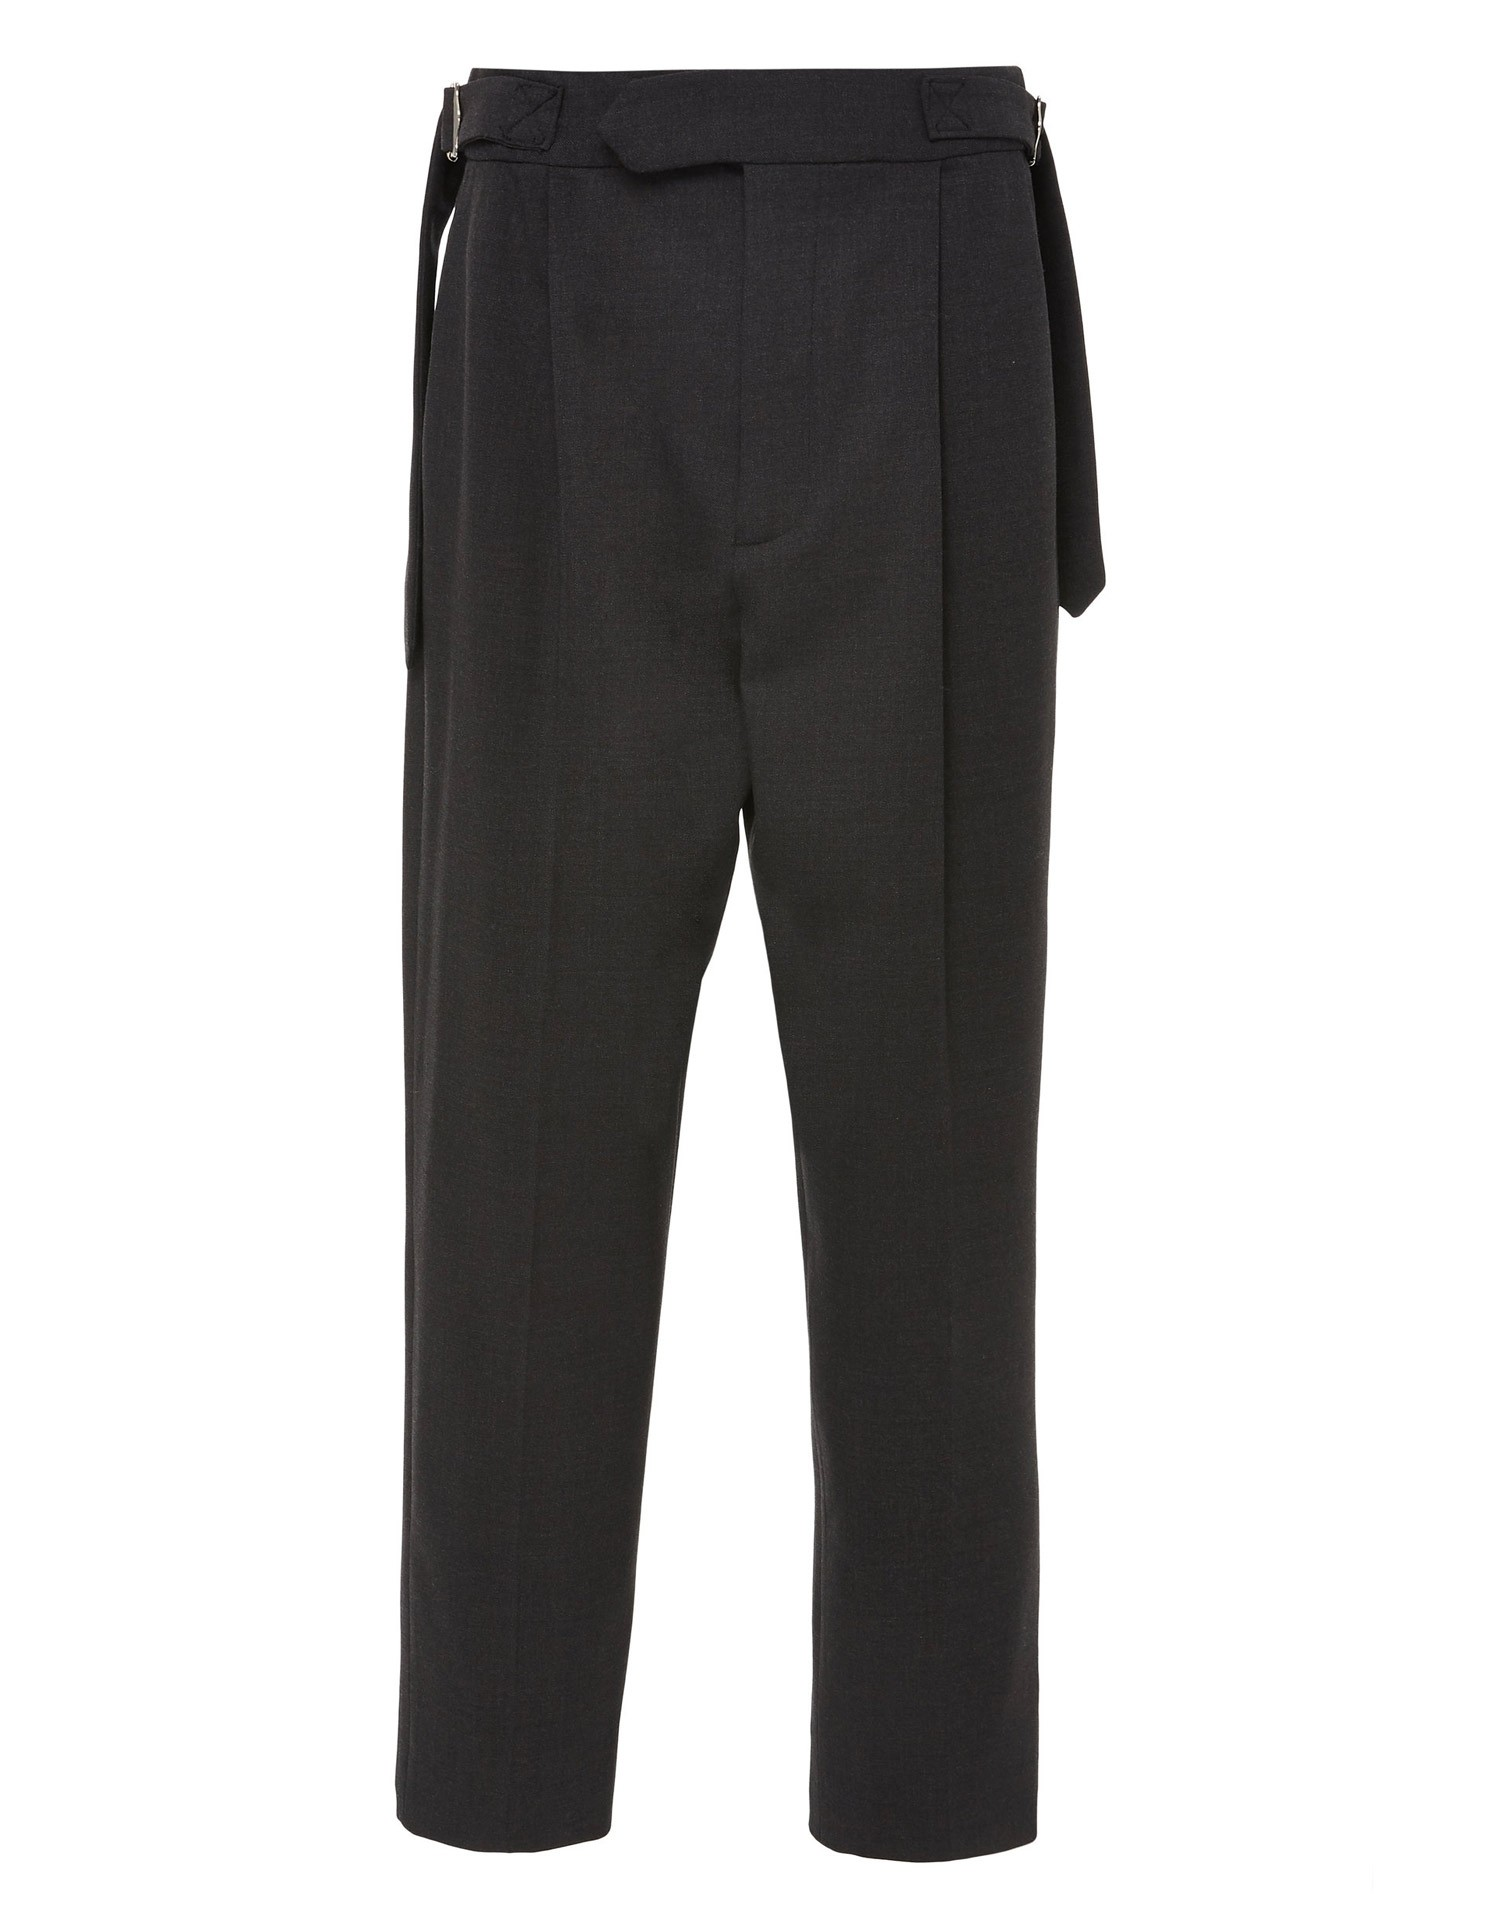 Monse Womens Charcoal Pleated Trouser with Belt